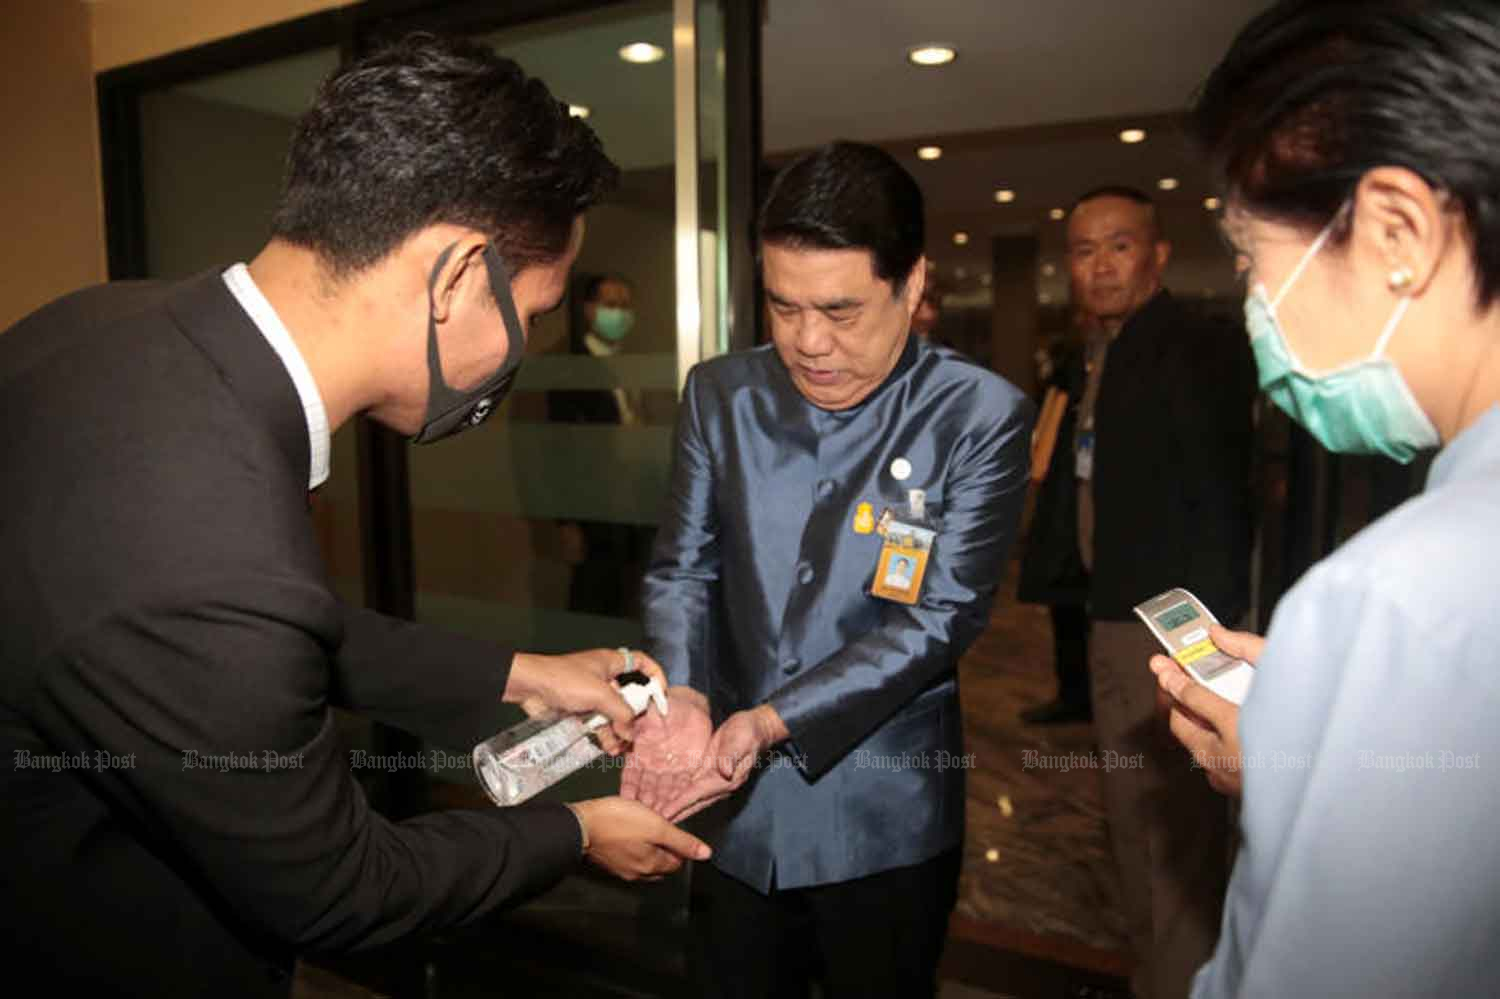 Industry Minister Suriya Jungrungreangkit takes a squirt of sanitising gel and has his temperature taken as part of measures at Government House to combat the Covid-19 outbreak. (Photo by Chanat Katanyu)